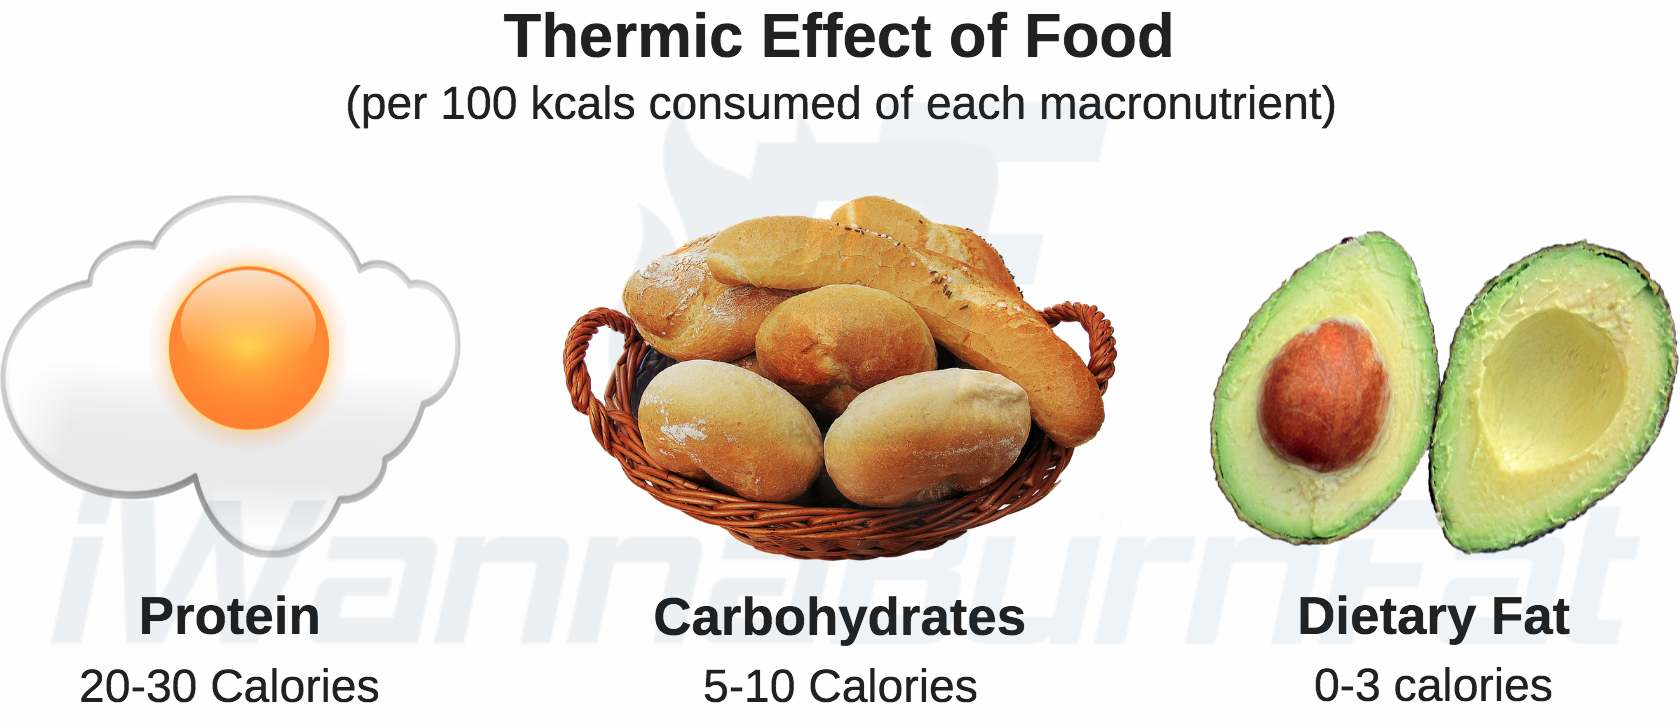 energy expenditure: thermic effect of food